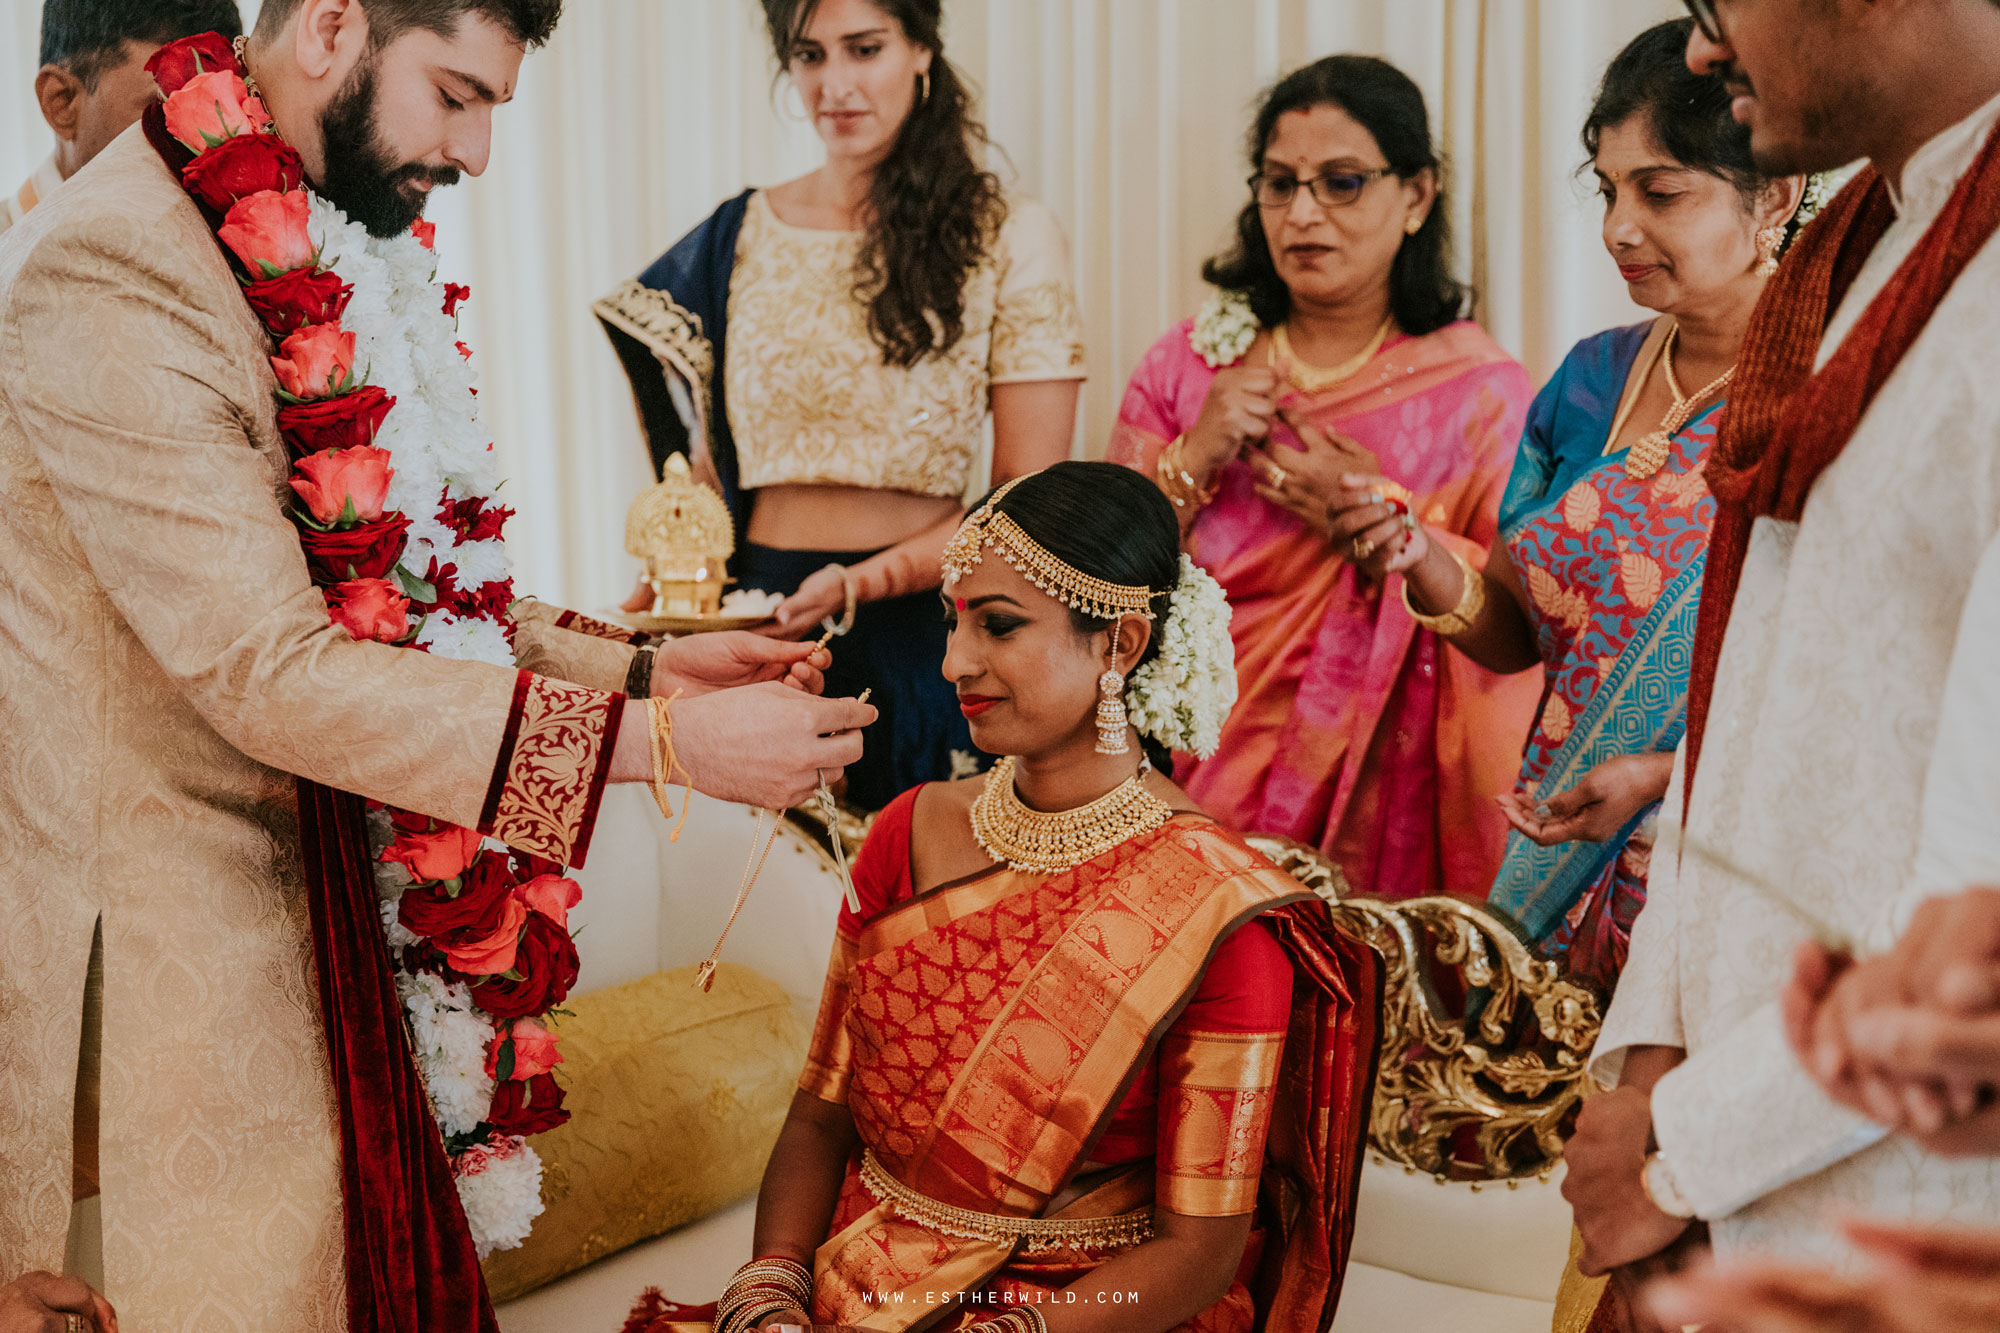 Northbrook_Park_Farnham_Surrey_London_Wedding_Hindu_Fusion_Esther_Wild_Photographer_IMG_4492.jpg